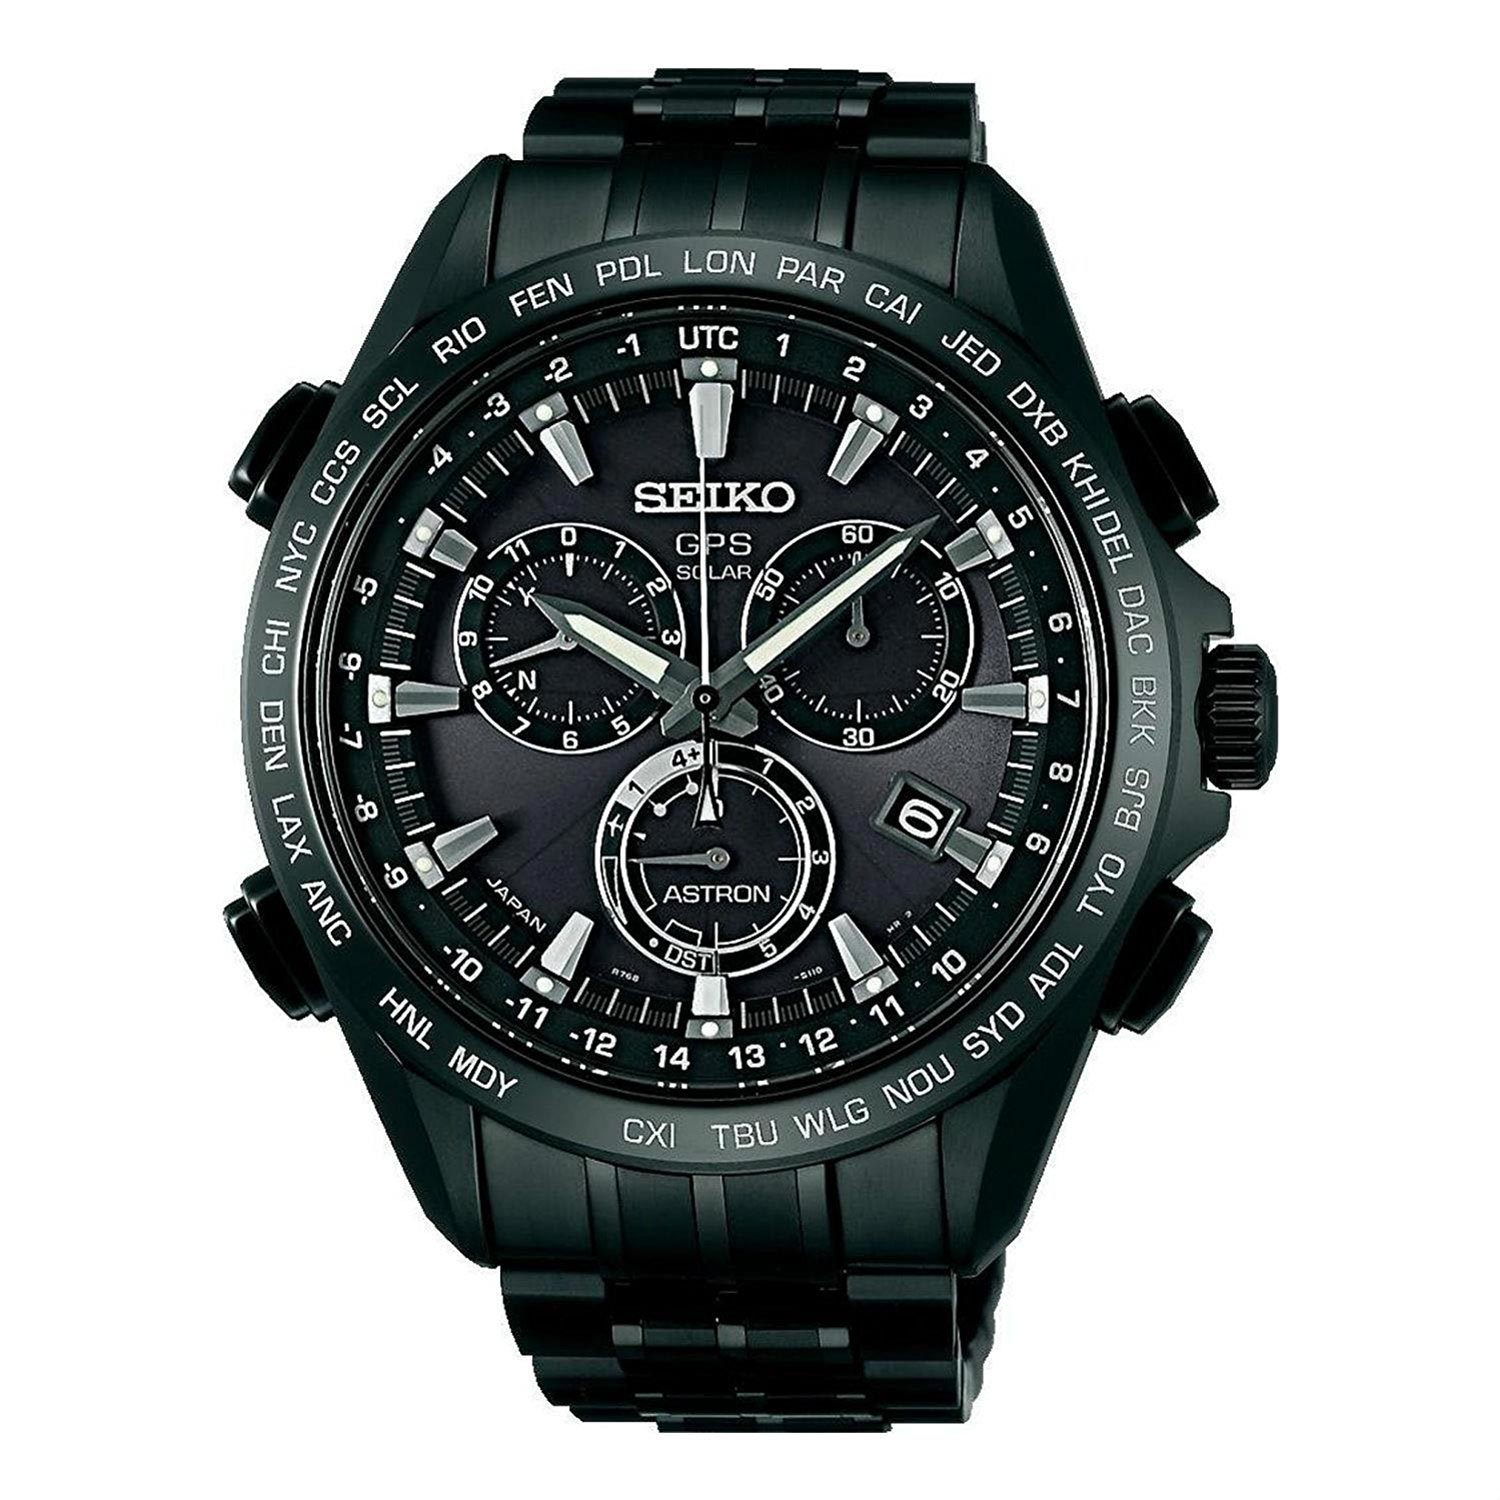 seiko astron gps solar der luxus chronograph mit titan. Black Bedroom Furniture Sets. Home Design Ideas